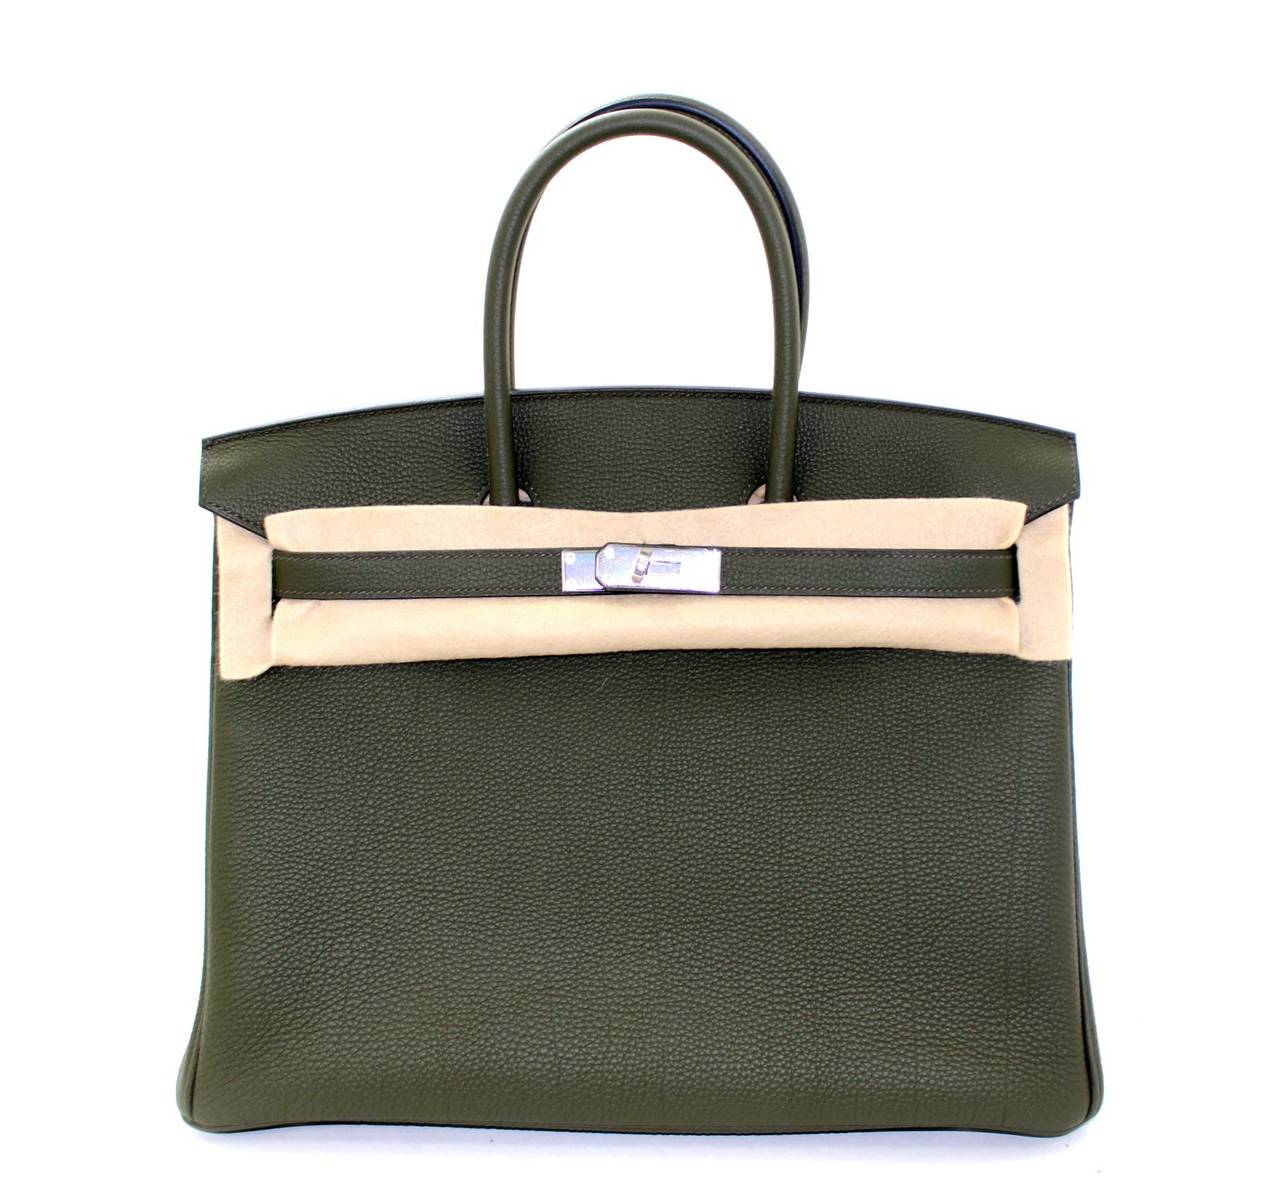 Hermes Birkin Bag in Vert Olive green Togo Leather, 35 cm size 9